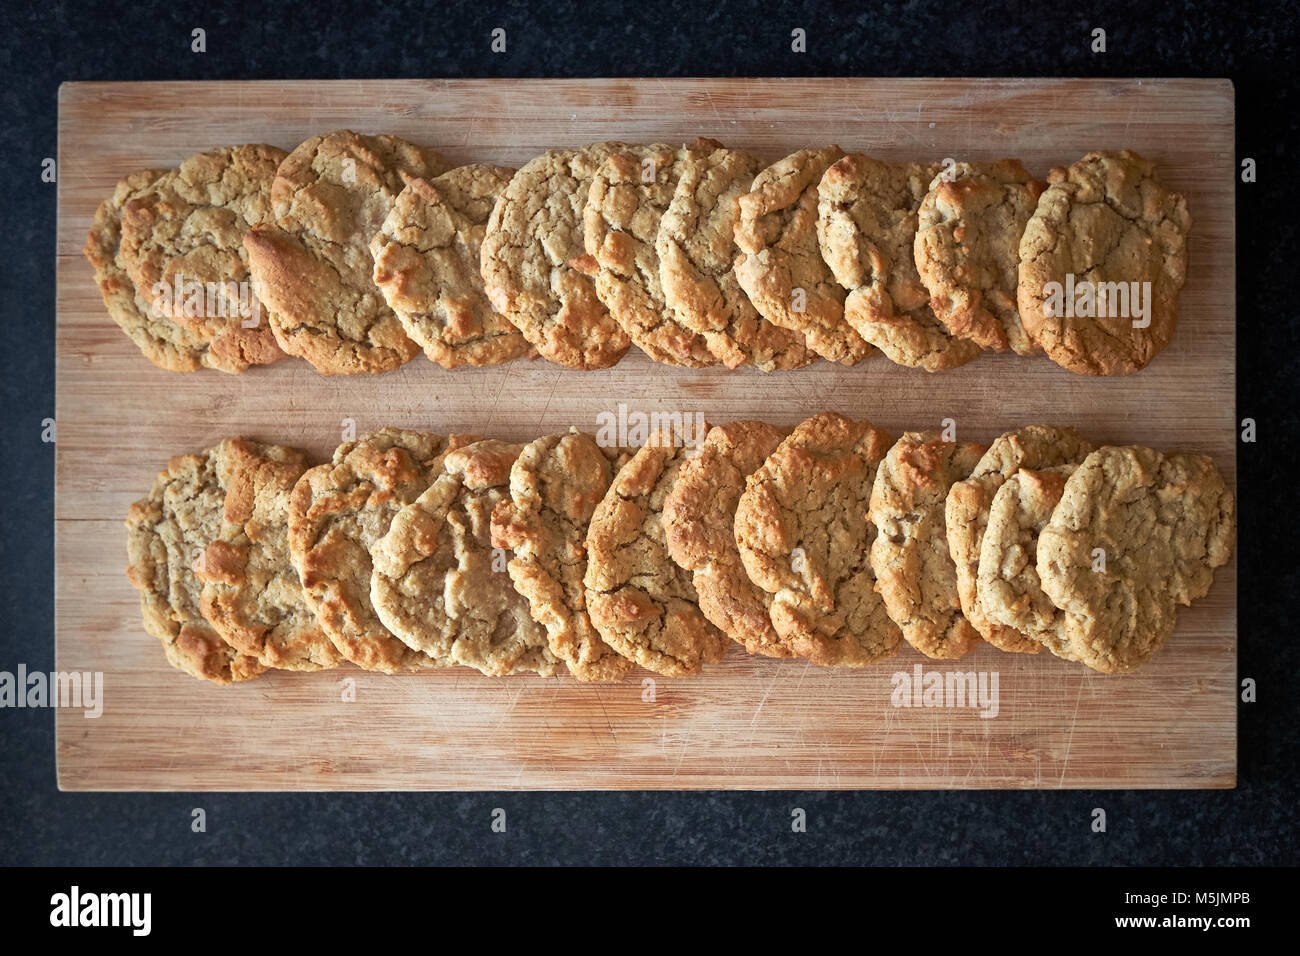 Two rows of freshly cooked plain American cookie biscuits laid out to cool on a wooden board. - Stock Image